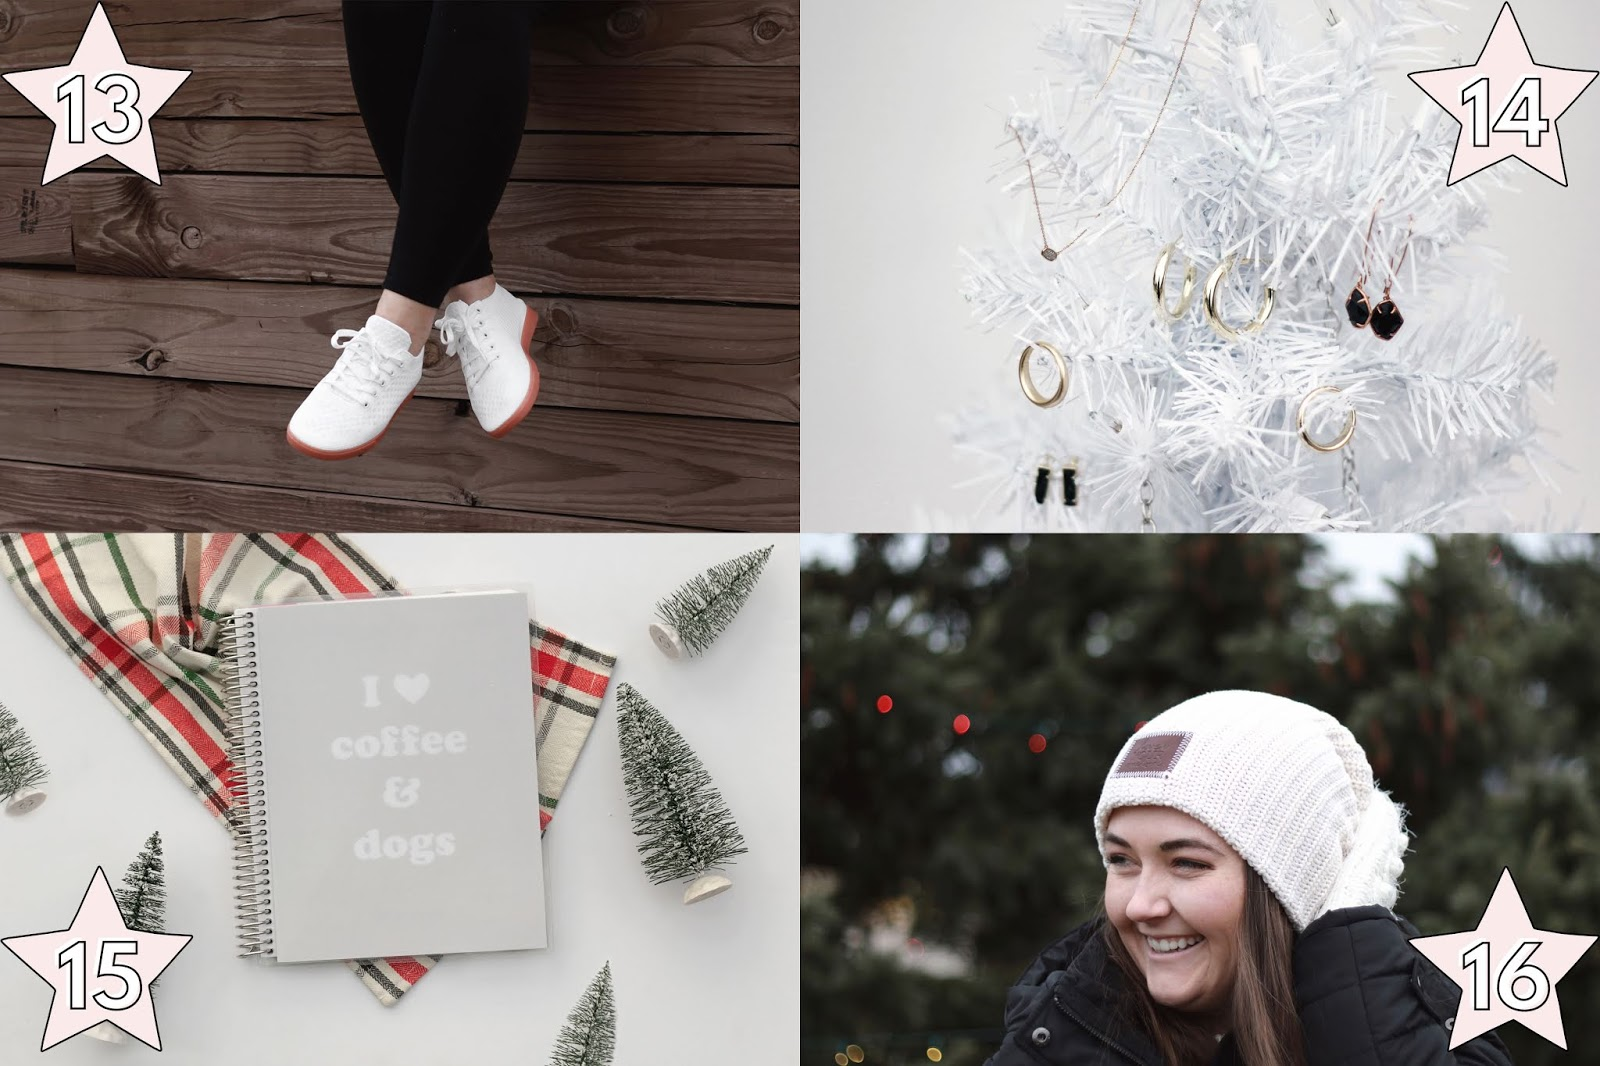 unique holiday gift ideas for her, suavs most comfortable sneakers gift idea for her, kendra scott winter collection gift ideas for her, erin condren custom notebook gift idea, love your melon white beanie gift idea for her, holiday christmas gift ideas for her